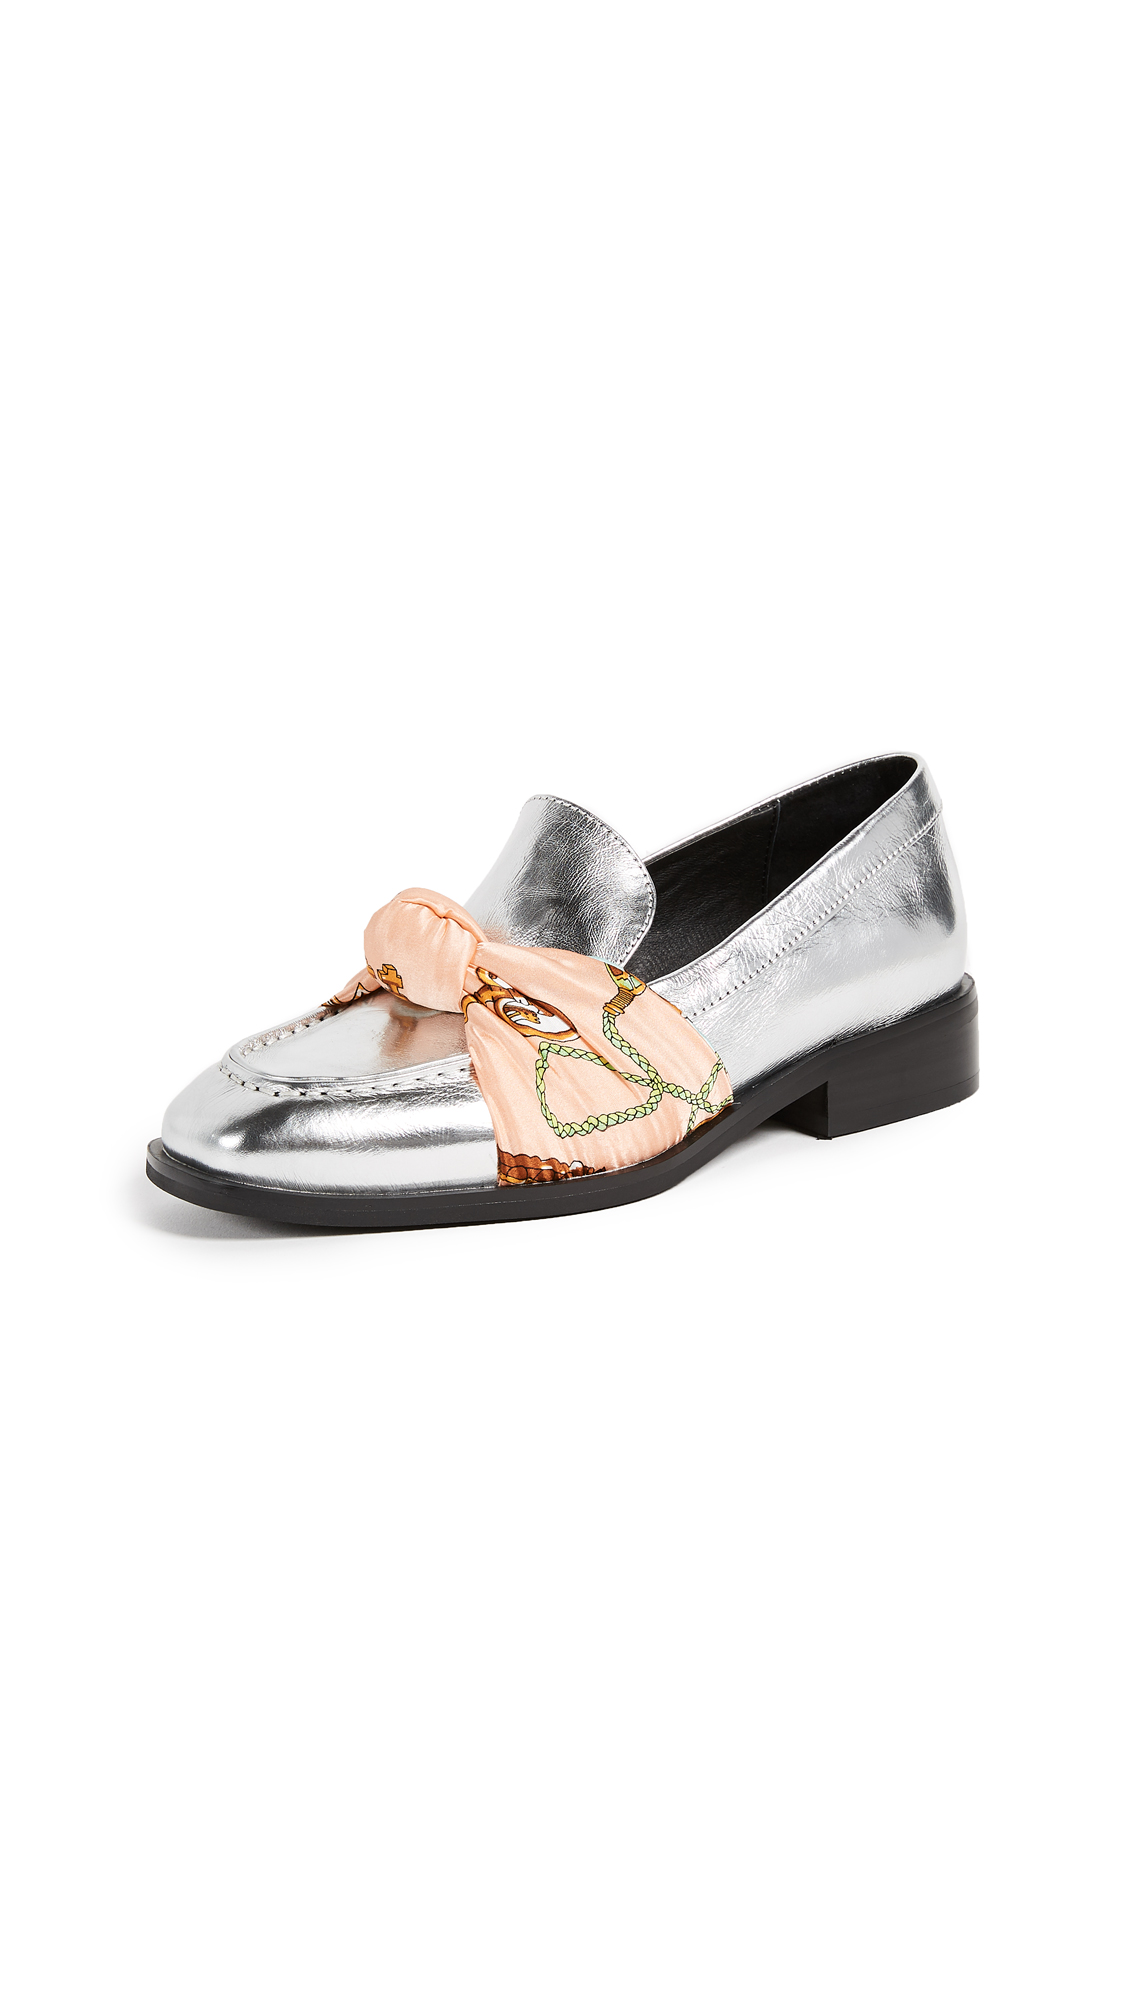 Jeffrey Campbell Bollero Scarf Loafers - Silver